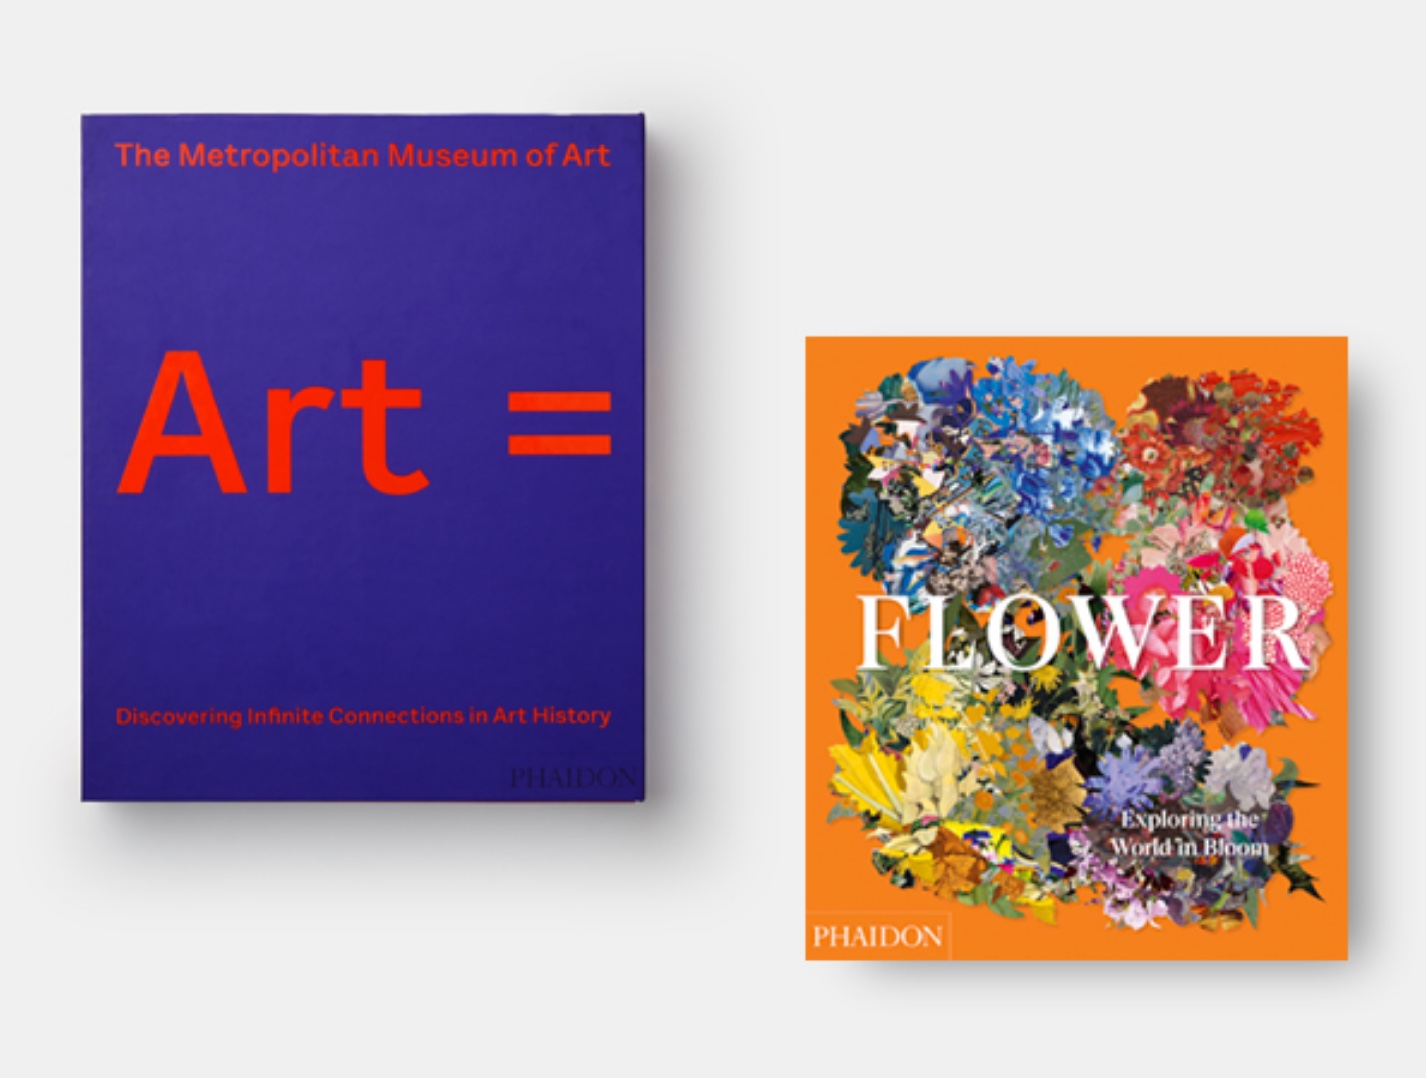 Art= and Flower